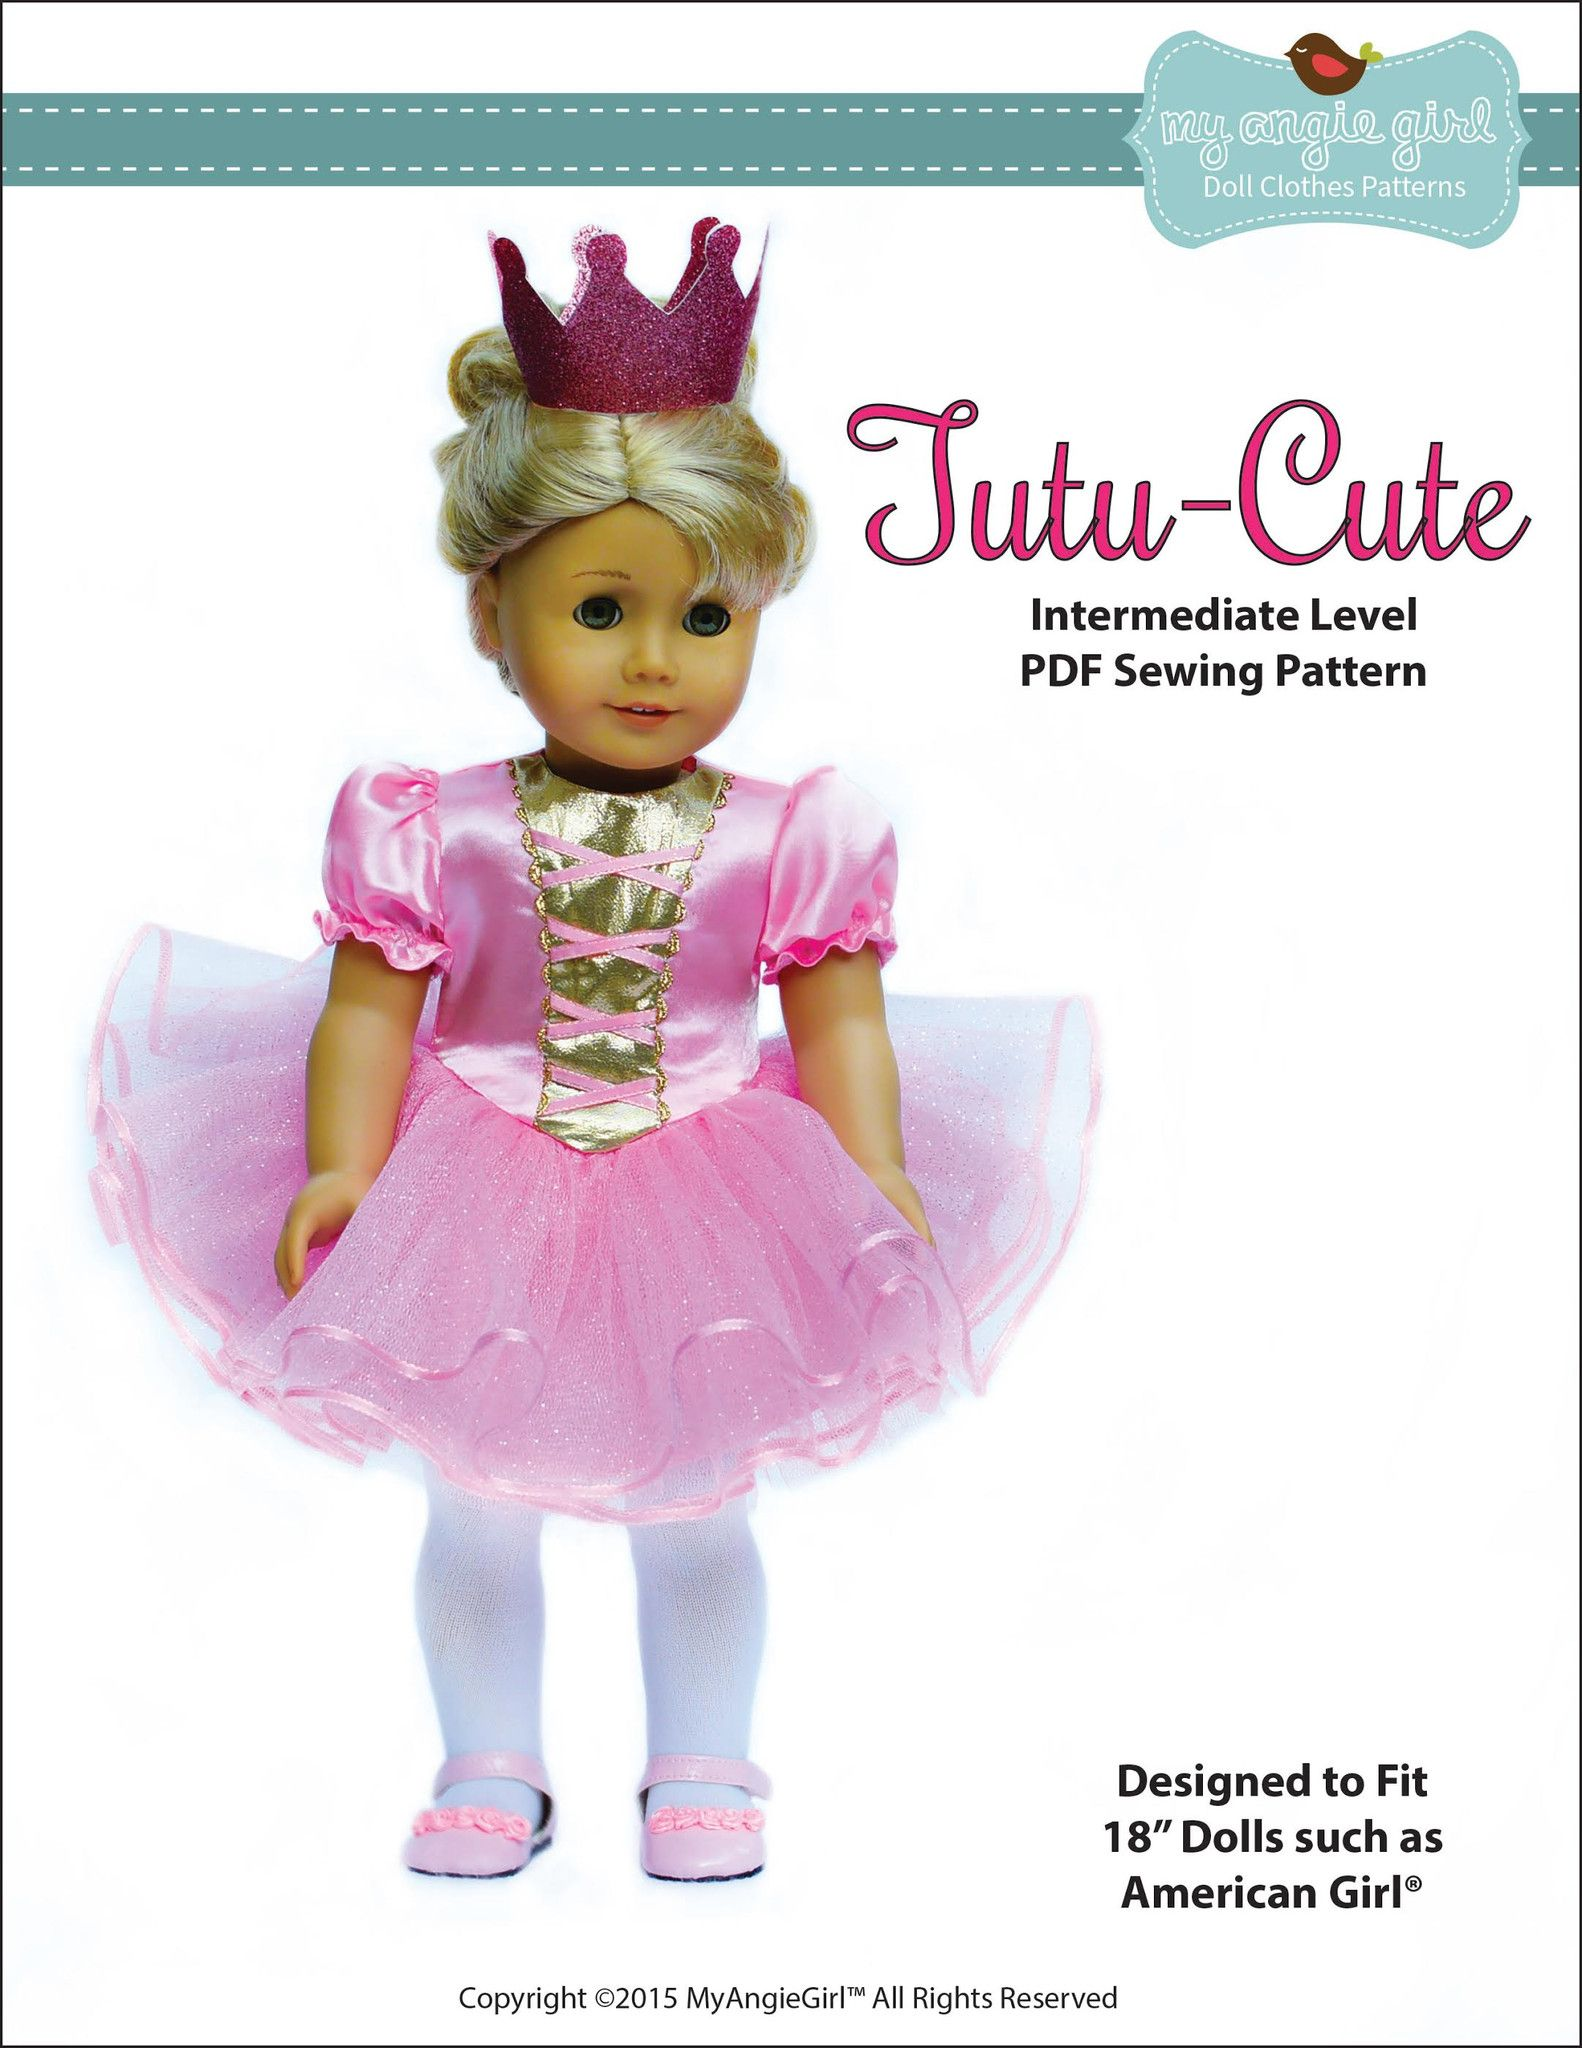 Tutu Cute Story Book Dress-Up Costume Dress 18